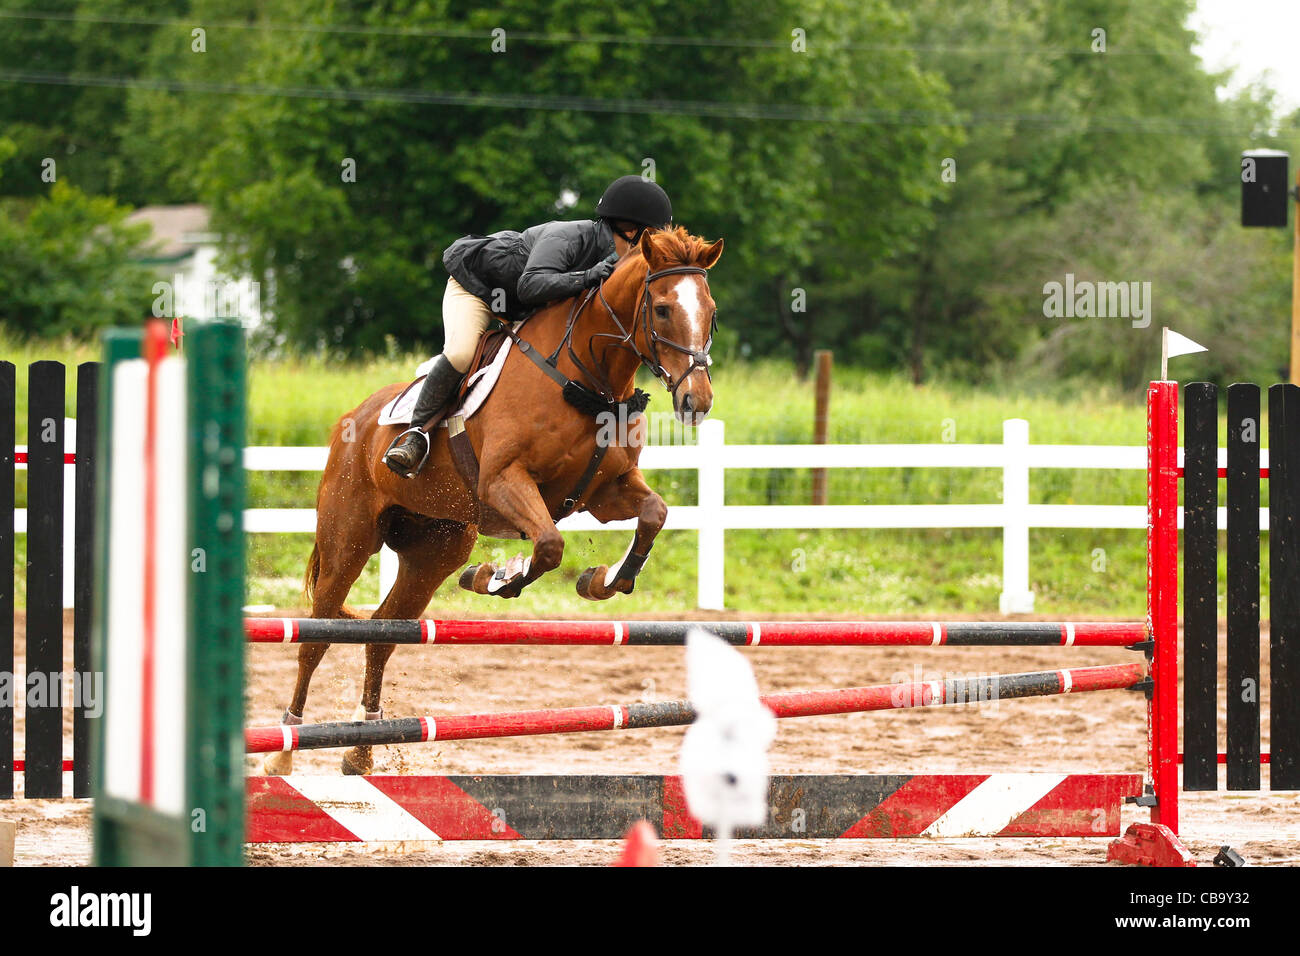 Chestnut Horse Jumping Red Fence Stock Photo Alamy